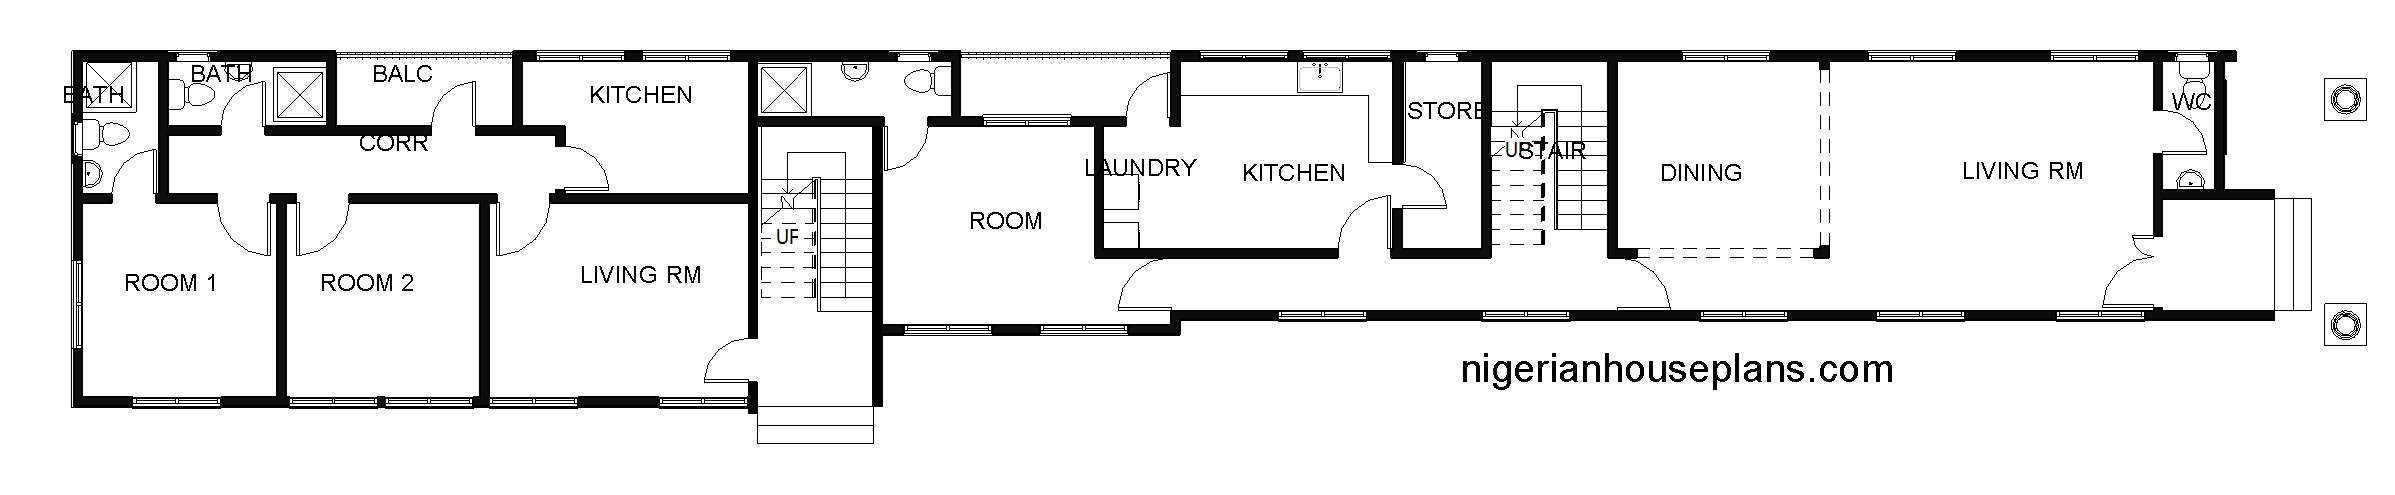 2 Bedroom Duplexes 28 Images 2 Bedroom Duplex 4